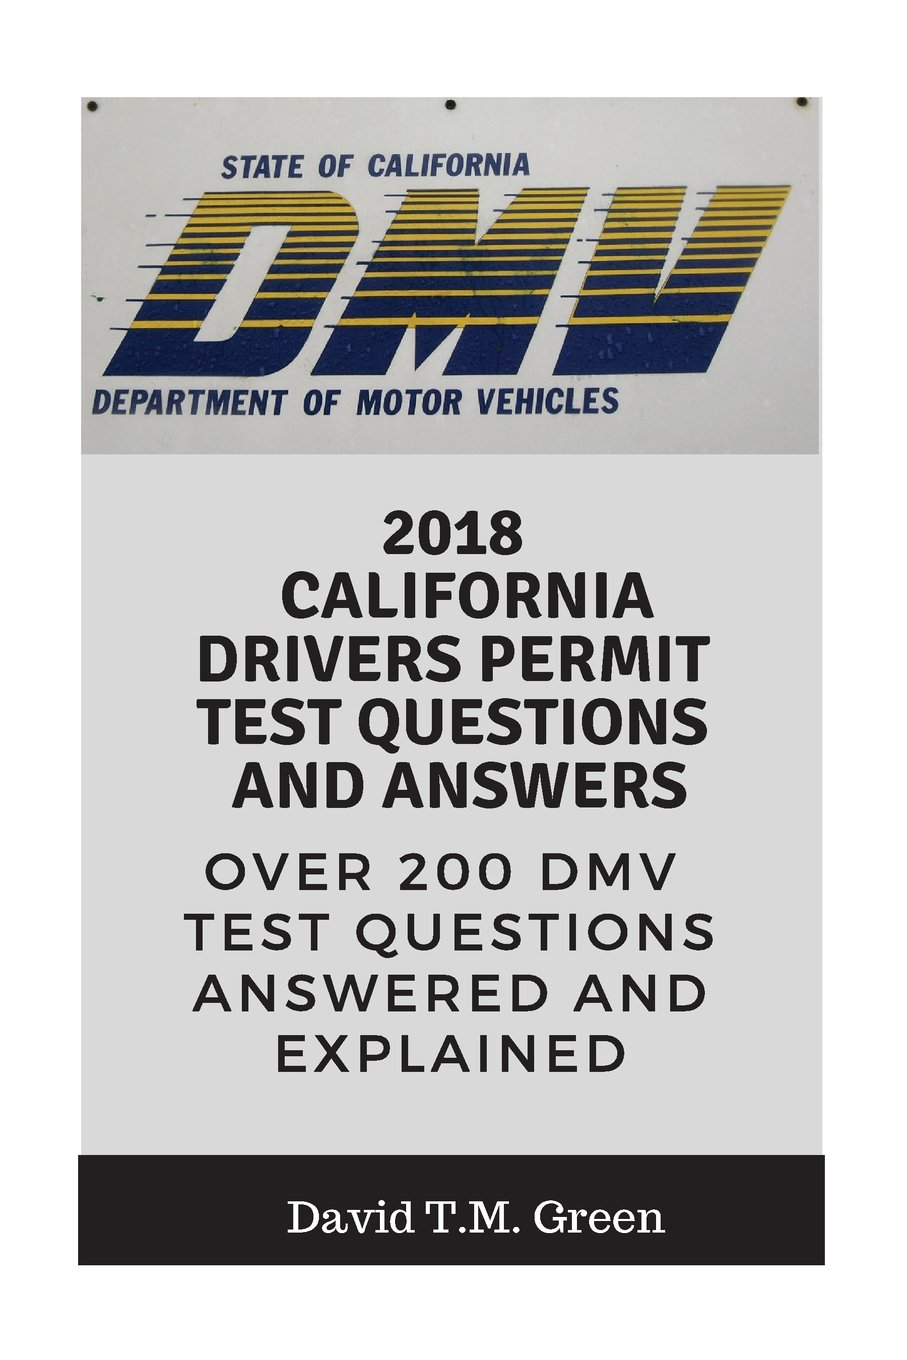 2018 California Drivers Permit Test Questions And Answers: Over 200 California  Driver License Test Questions Answered and Explained: David T.M. Green: ...